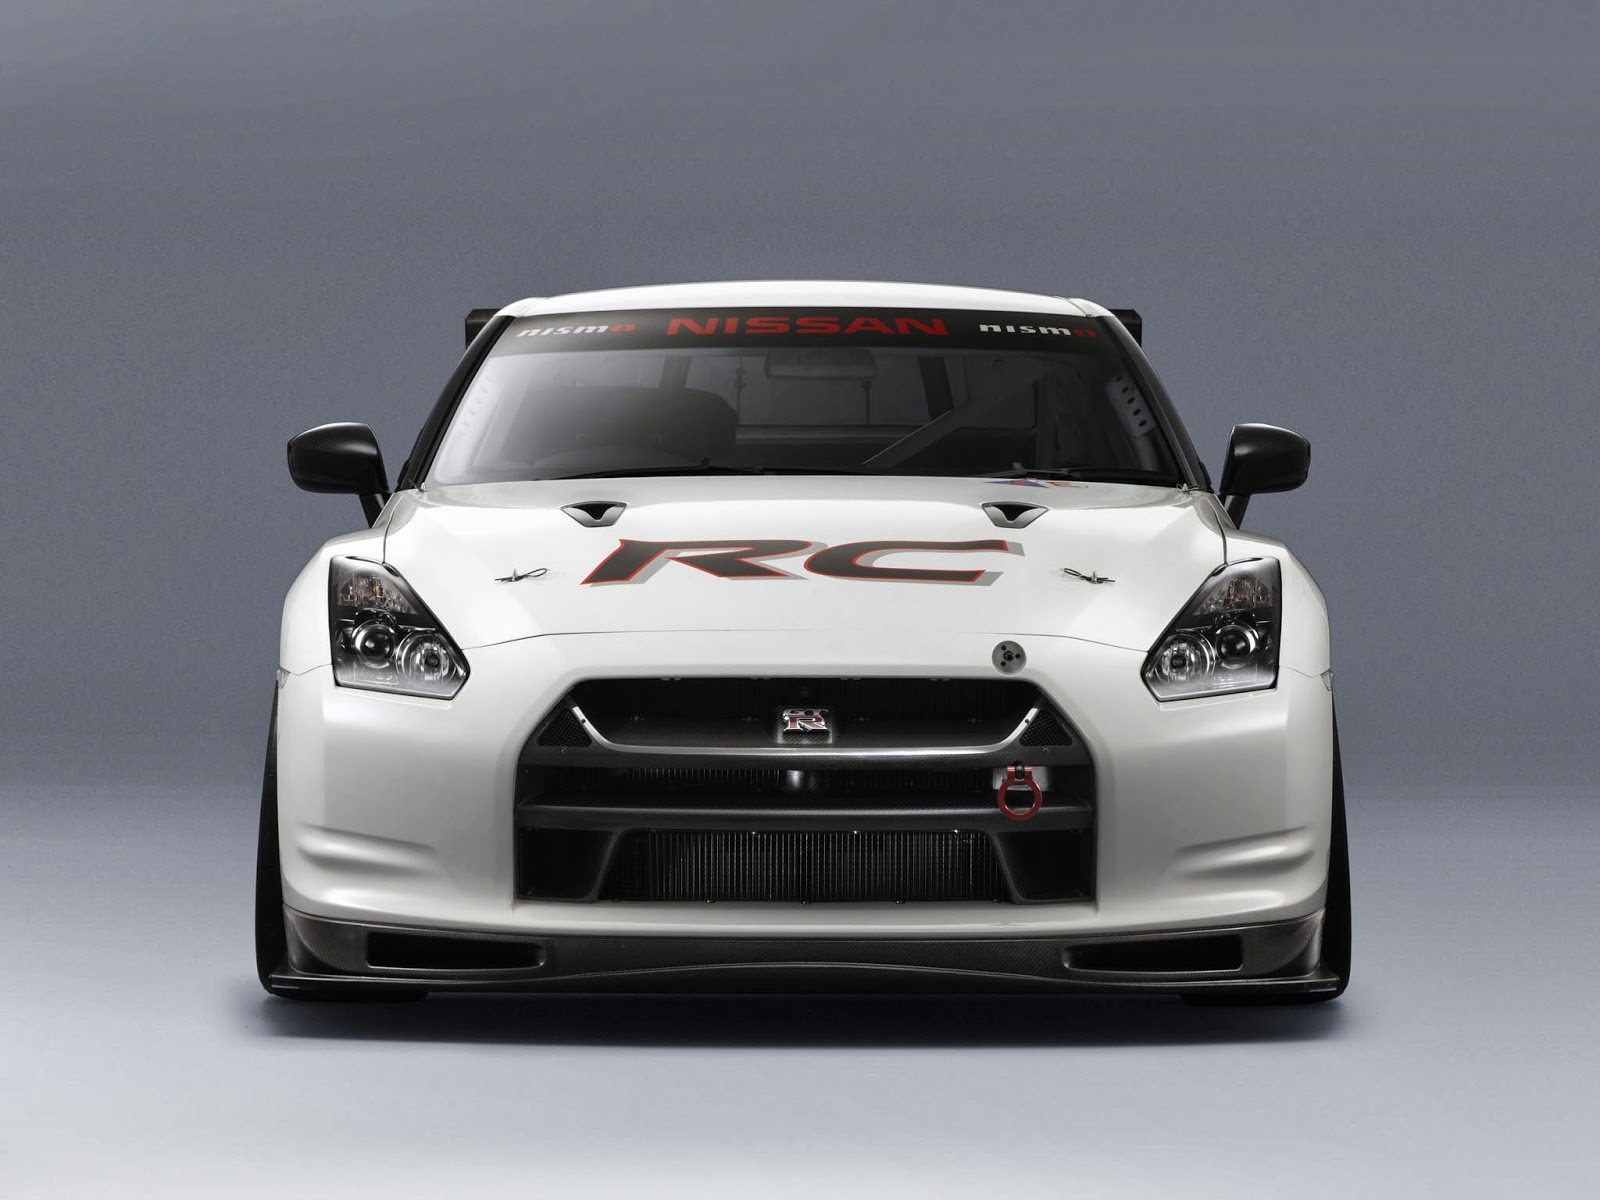 nissan nismo gt r rc prices photos just welcome to. Black Bedroom Furniture Sets. Home Design Ideas